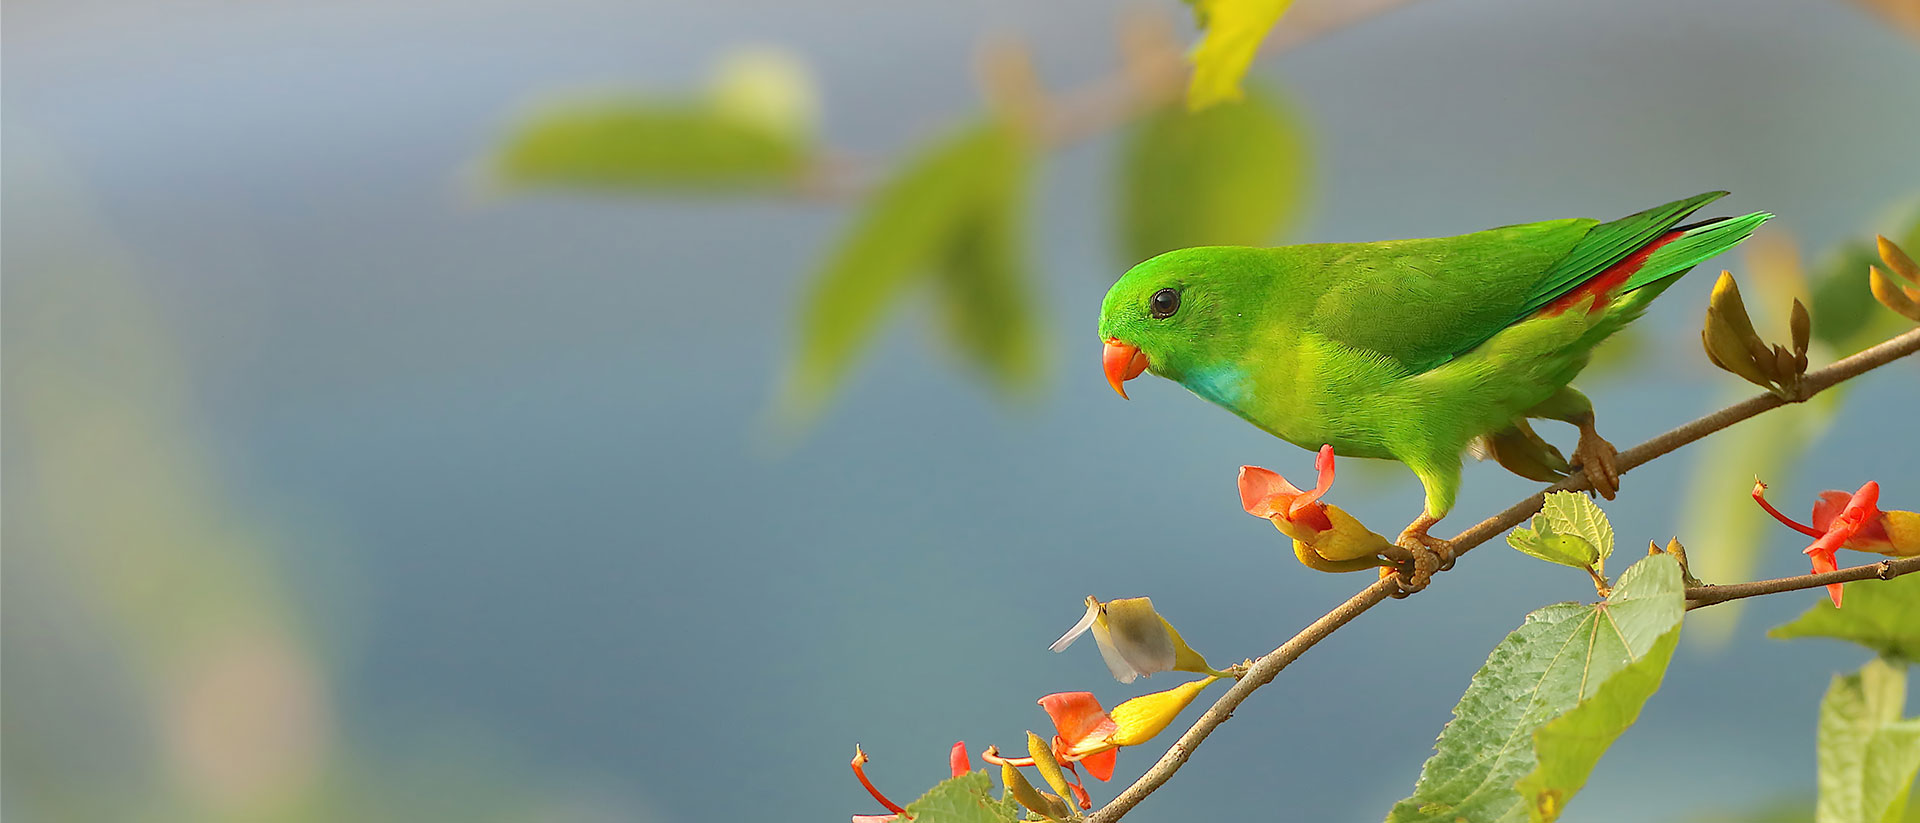 1/20th of the World's Birds are found in Goa